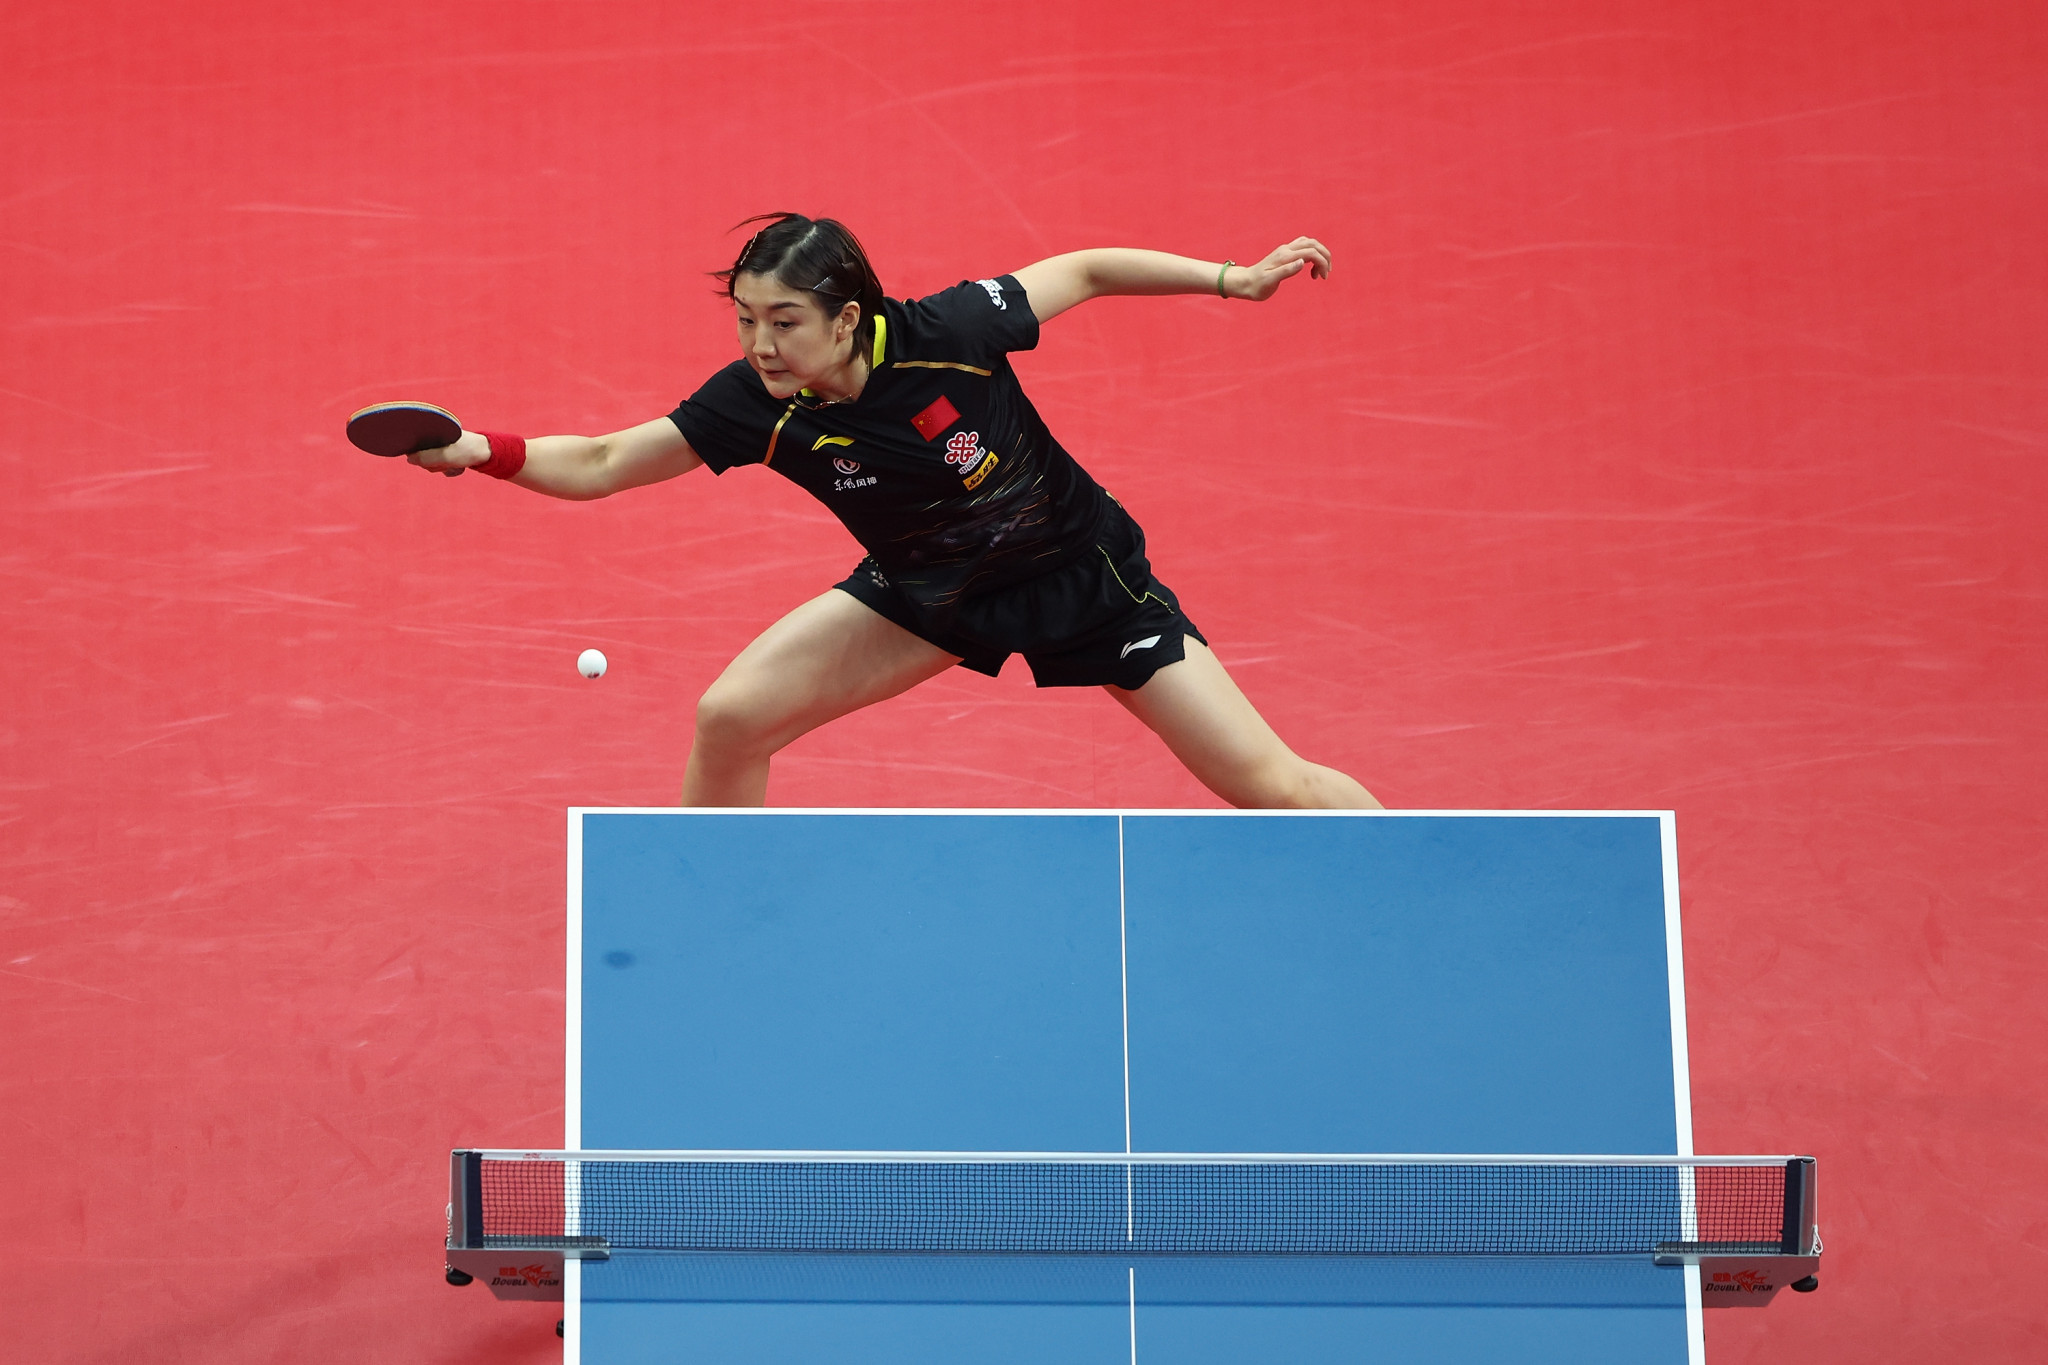 COVID-19 disruption sees new qualification system adopted for World Table Tennis Championships